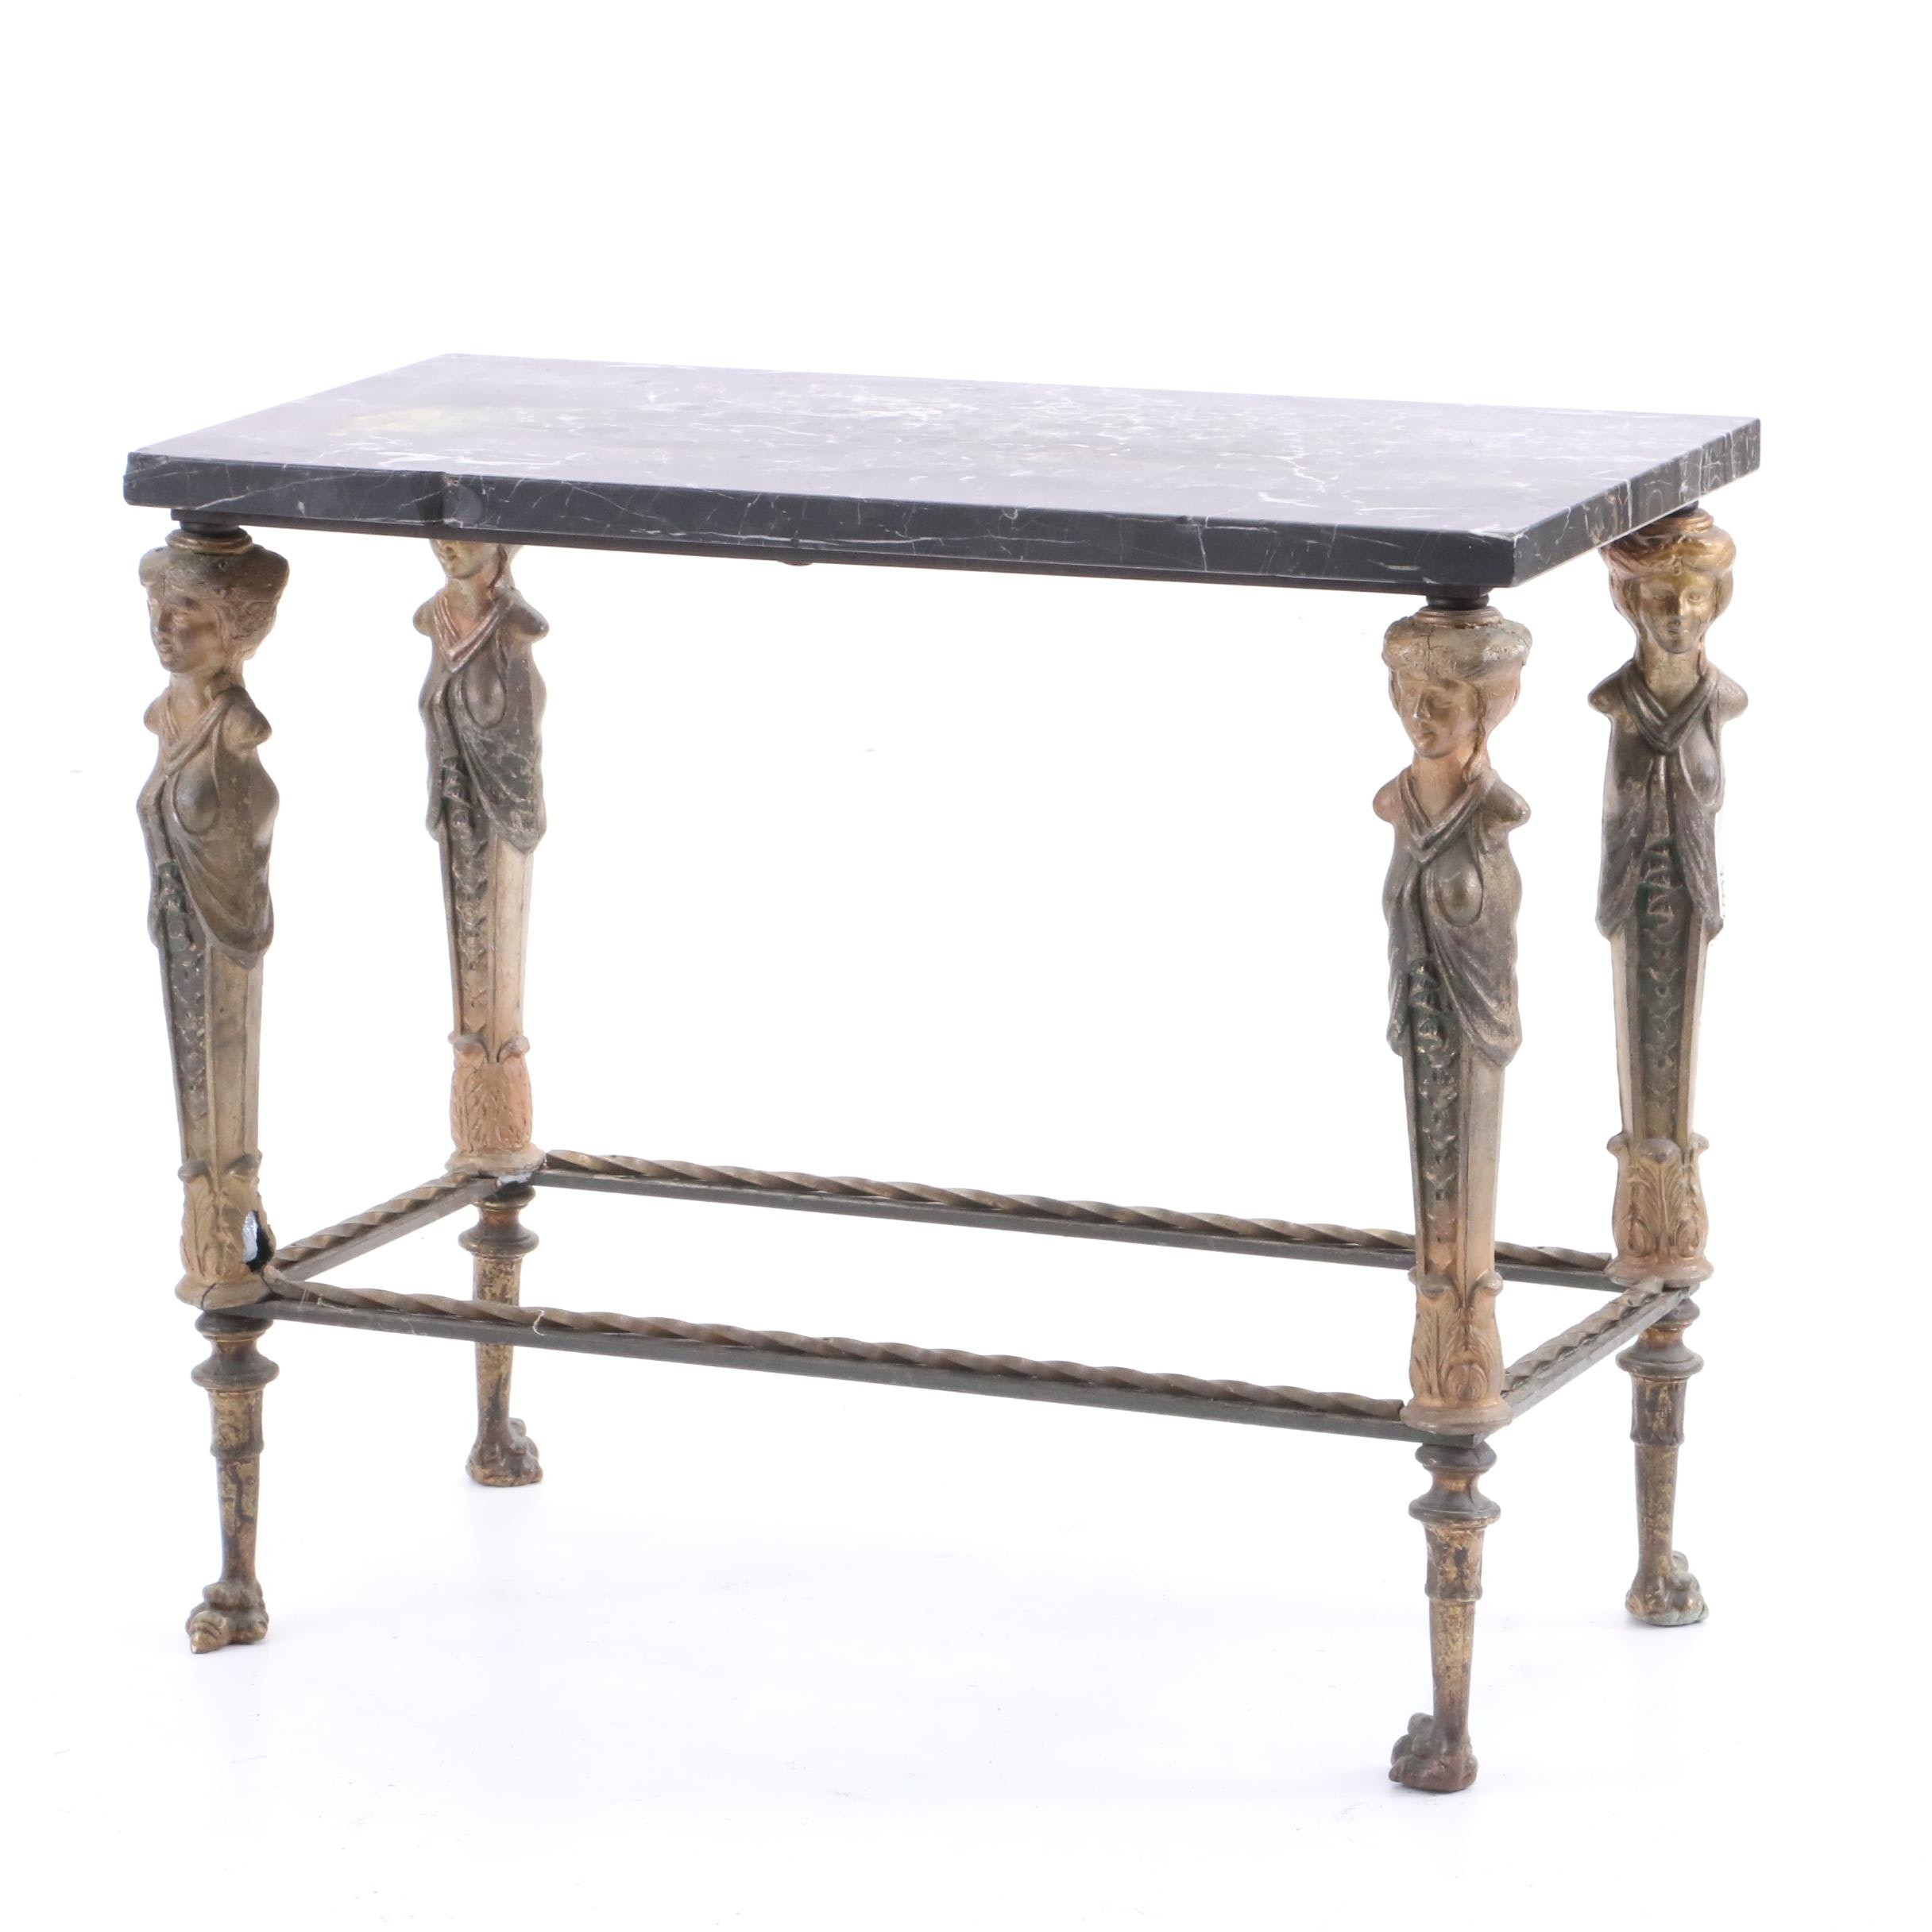 Neoclassical Style Metal and Marble Table with Caryatids, 20th Century